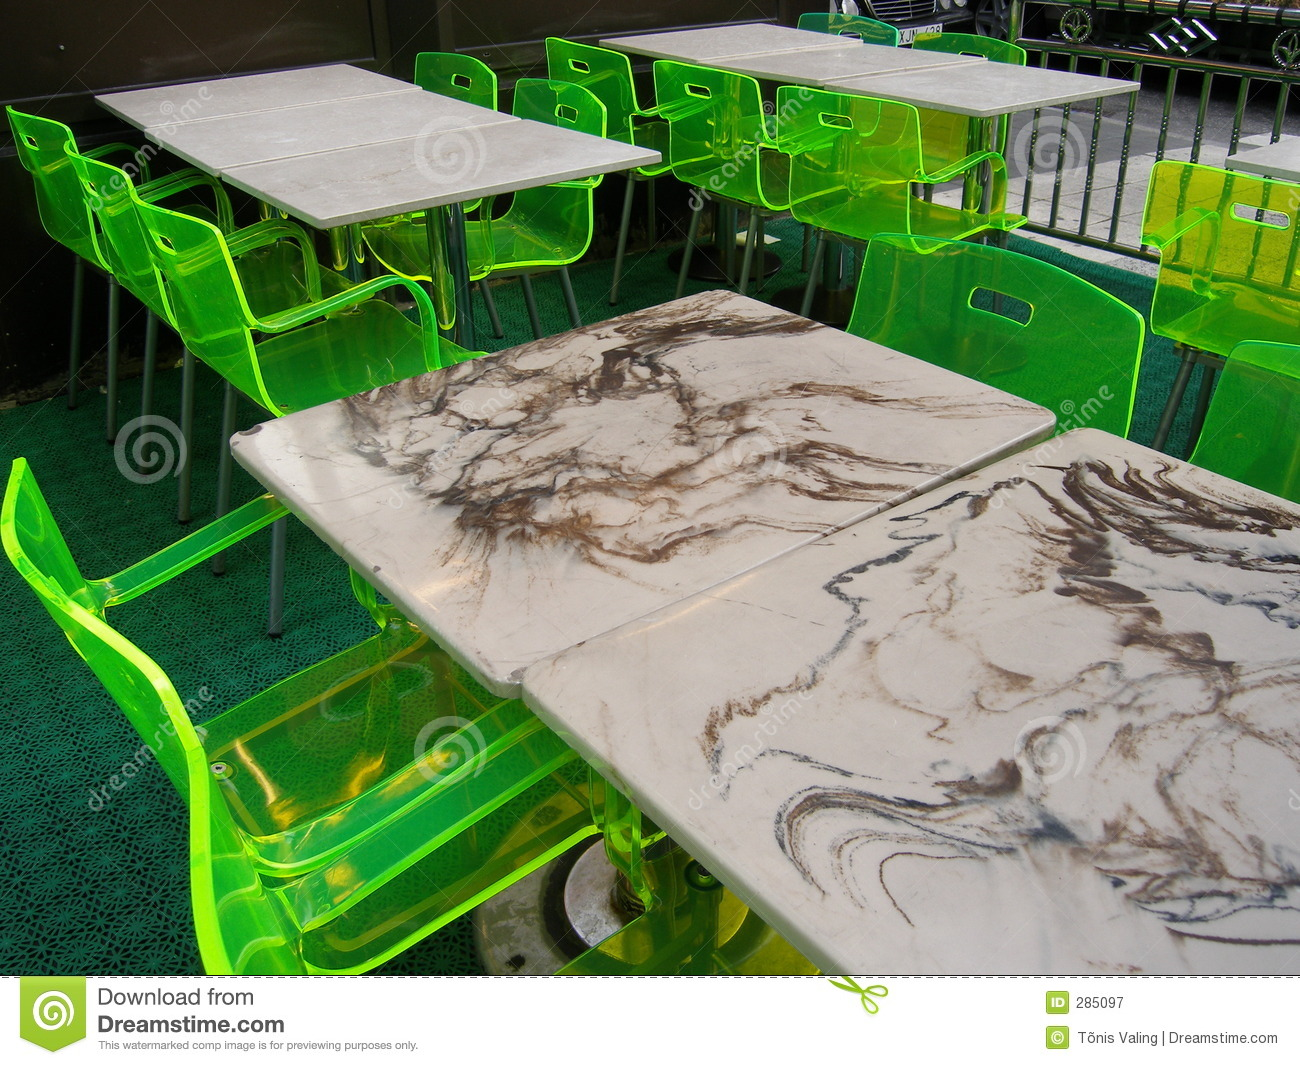 Tables au néon